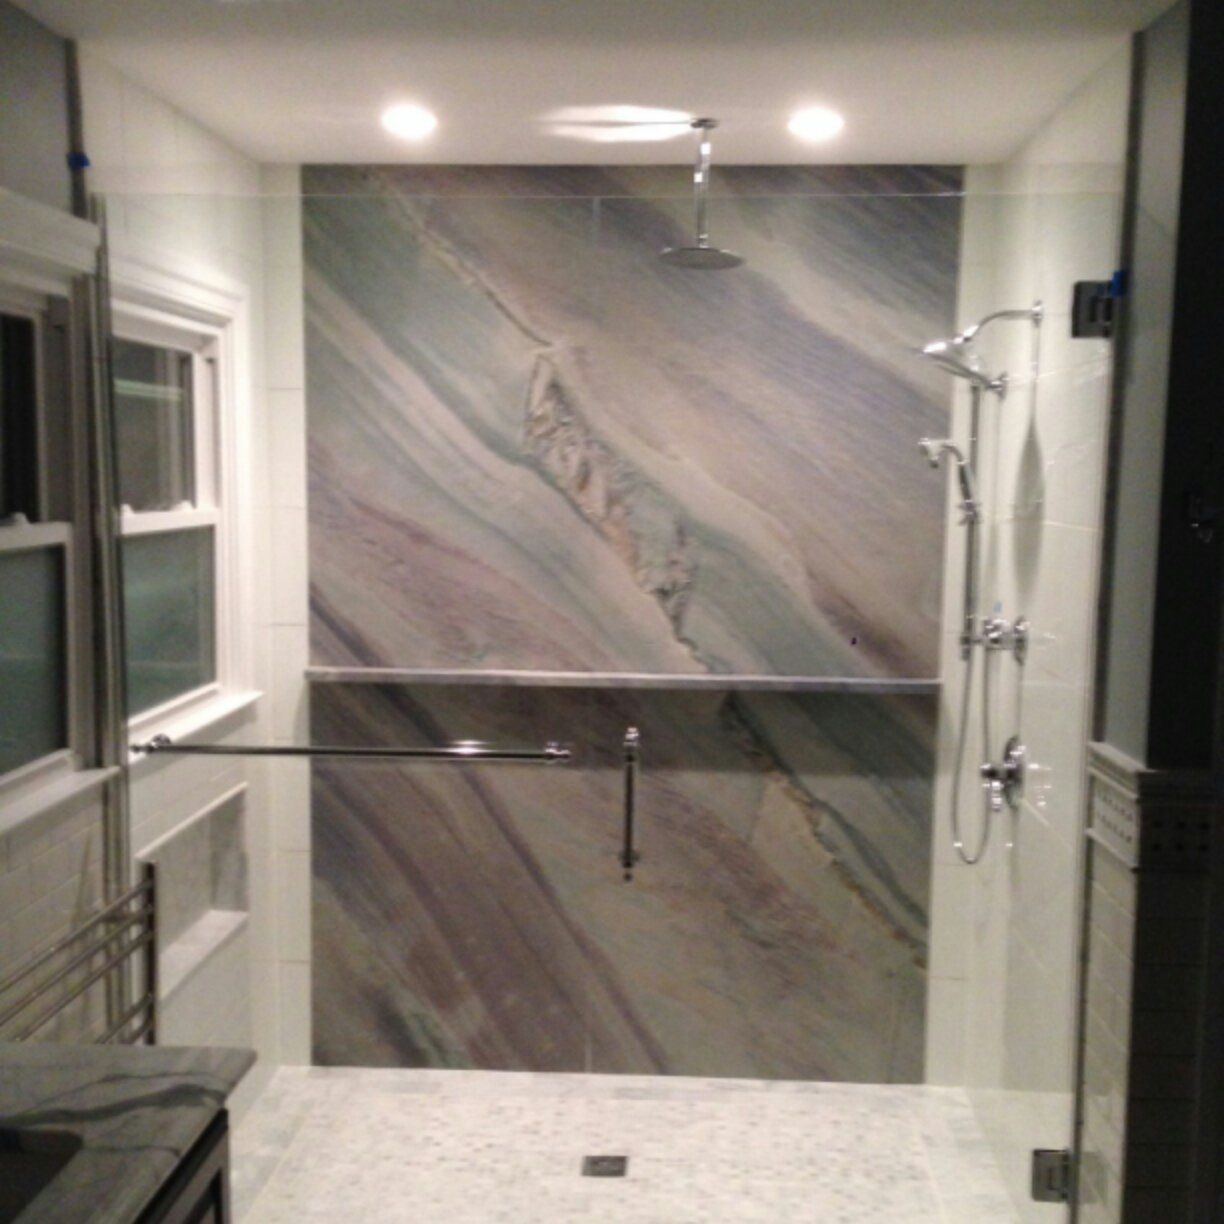 Gem granite bathrooms - This Is A Full Slab Of Granite As The Back Wall For A Custom Shower